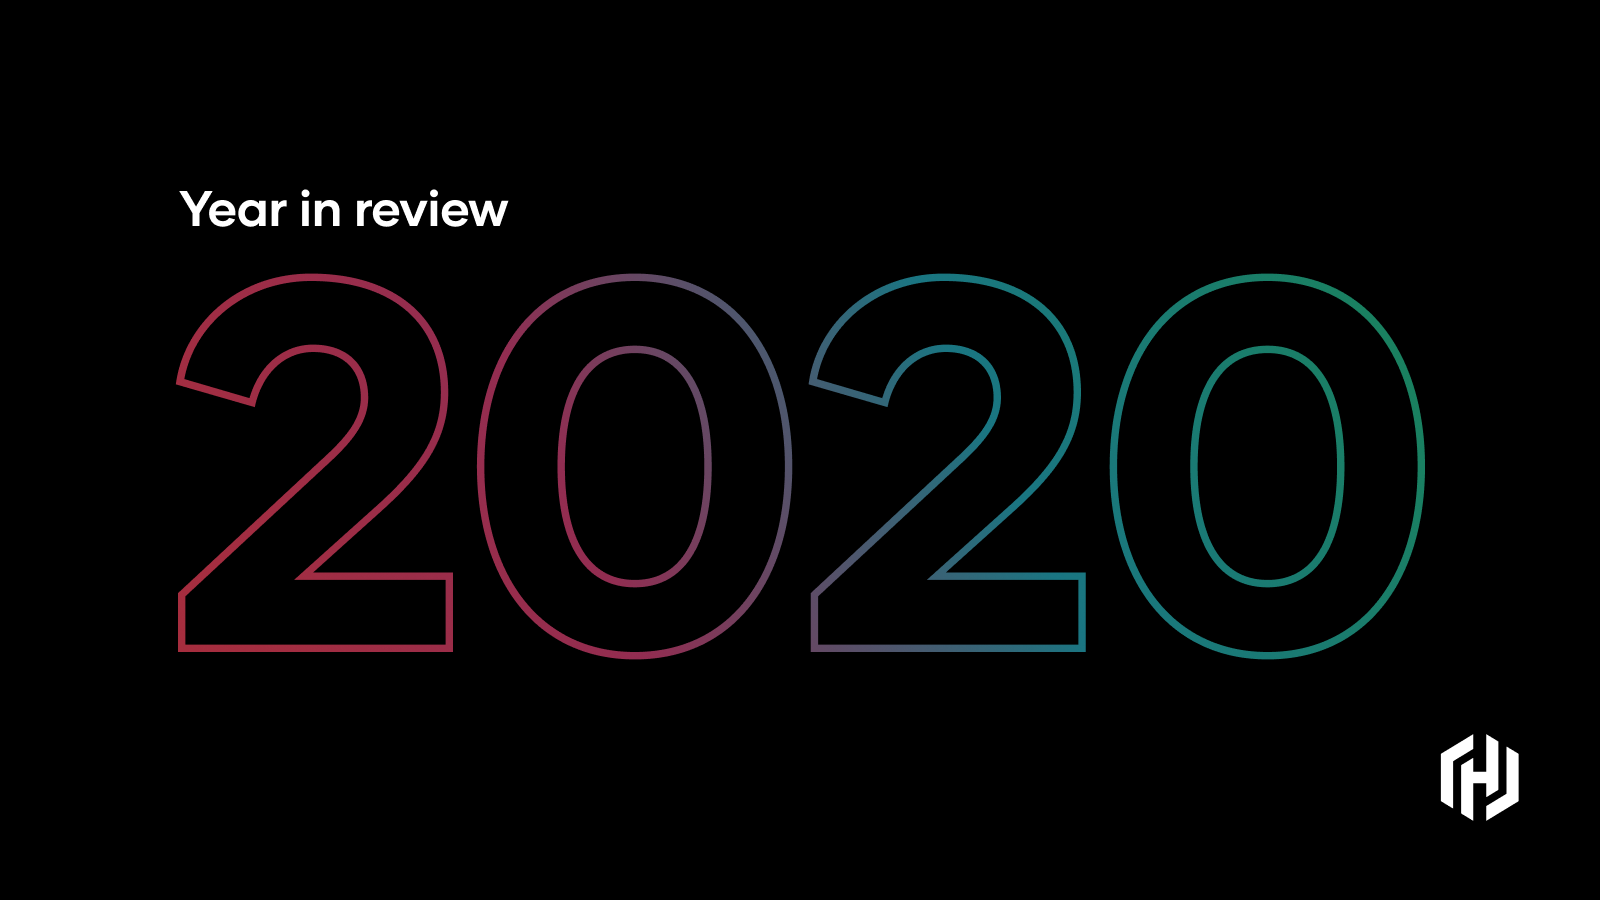 HashiCorp 2020 Year in Review